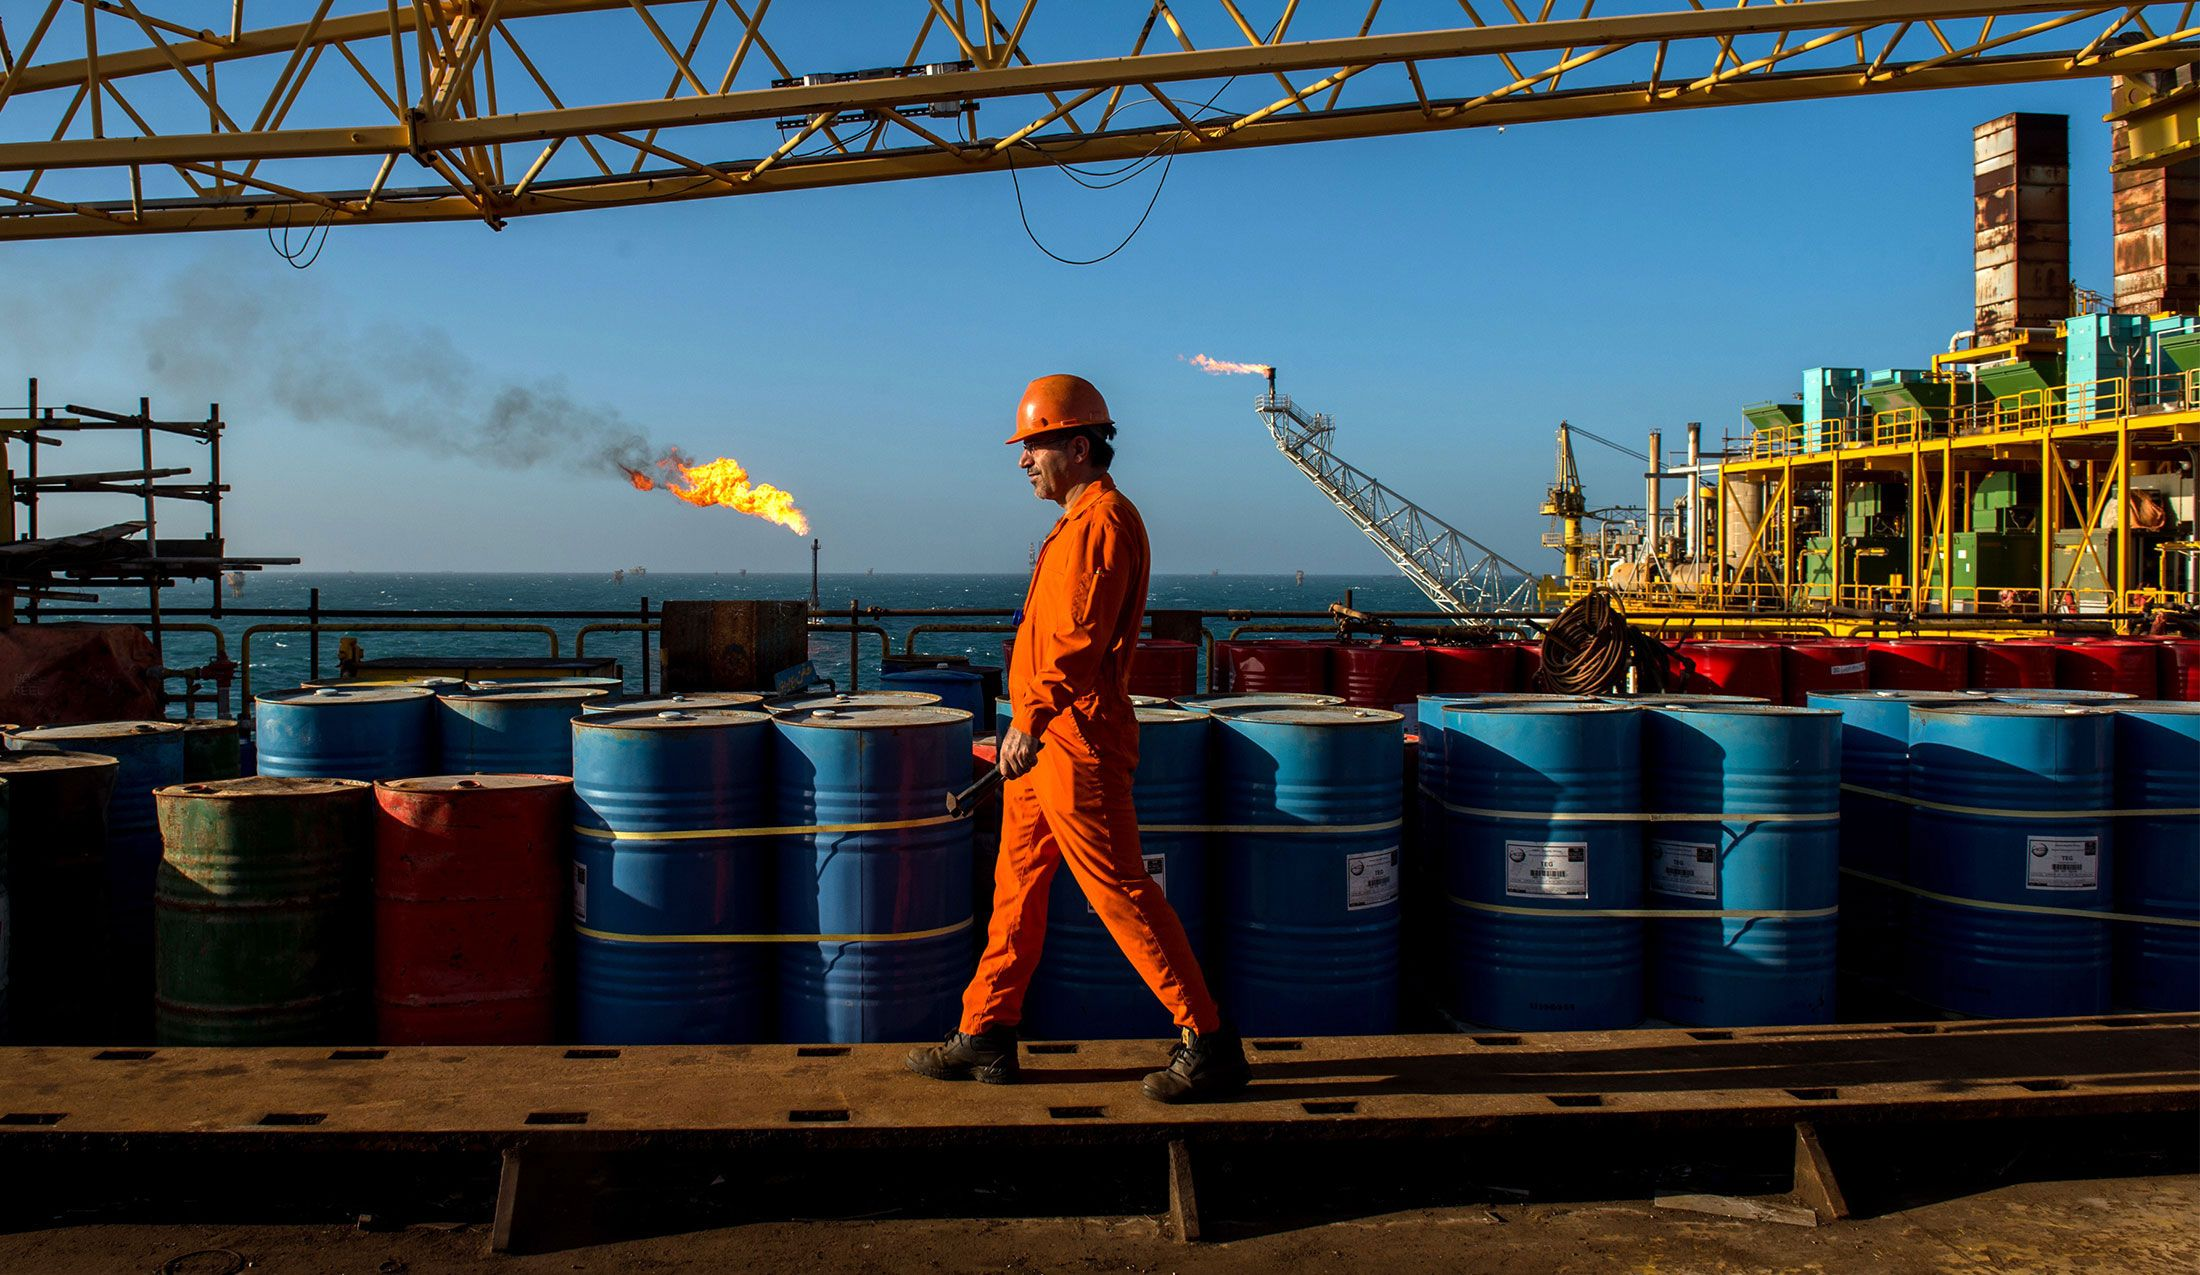 A worker passes stores of oil drums and gas flares while working aboard an offshore oil platform in the Persian Gulf's Salman Oil Field, operated by the National Iranian Offshore Oil Co., near Lavan island, Iran, on Friday, Jan. 6. 2017. Photographer: Ali Mohammadi/Bloomberg